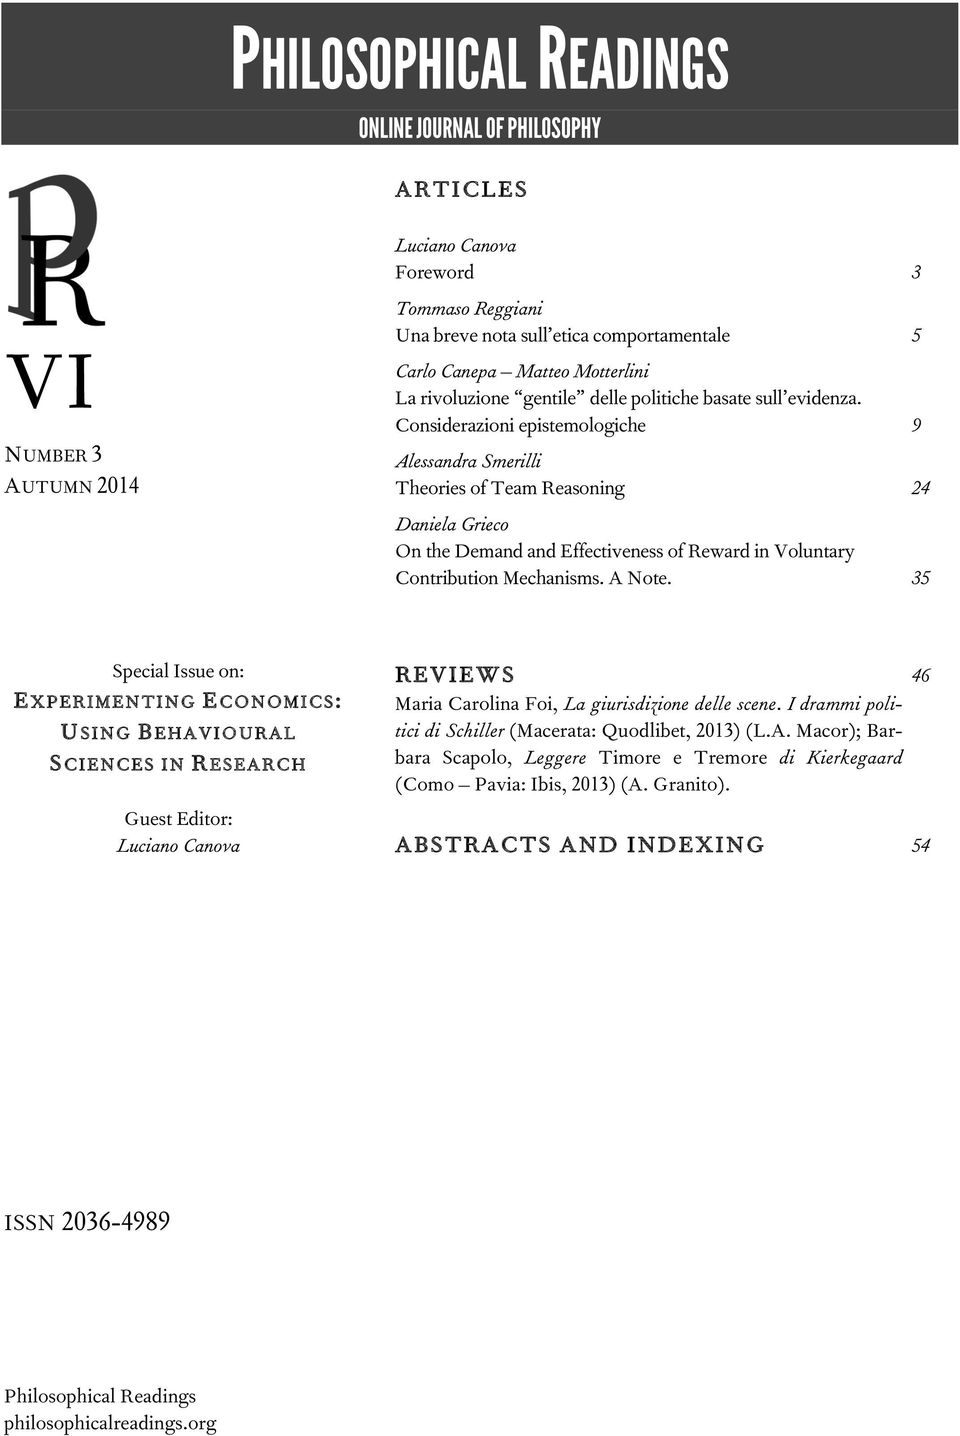 Considerazioni epistemologiche 9 Alessandra Smerilli Theories of Team Reasoning 24 Daniela Grieco On the Demand and Effectiveness of Reward in Voluntary Contribution Mechanisms. A Note.